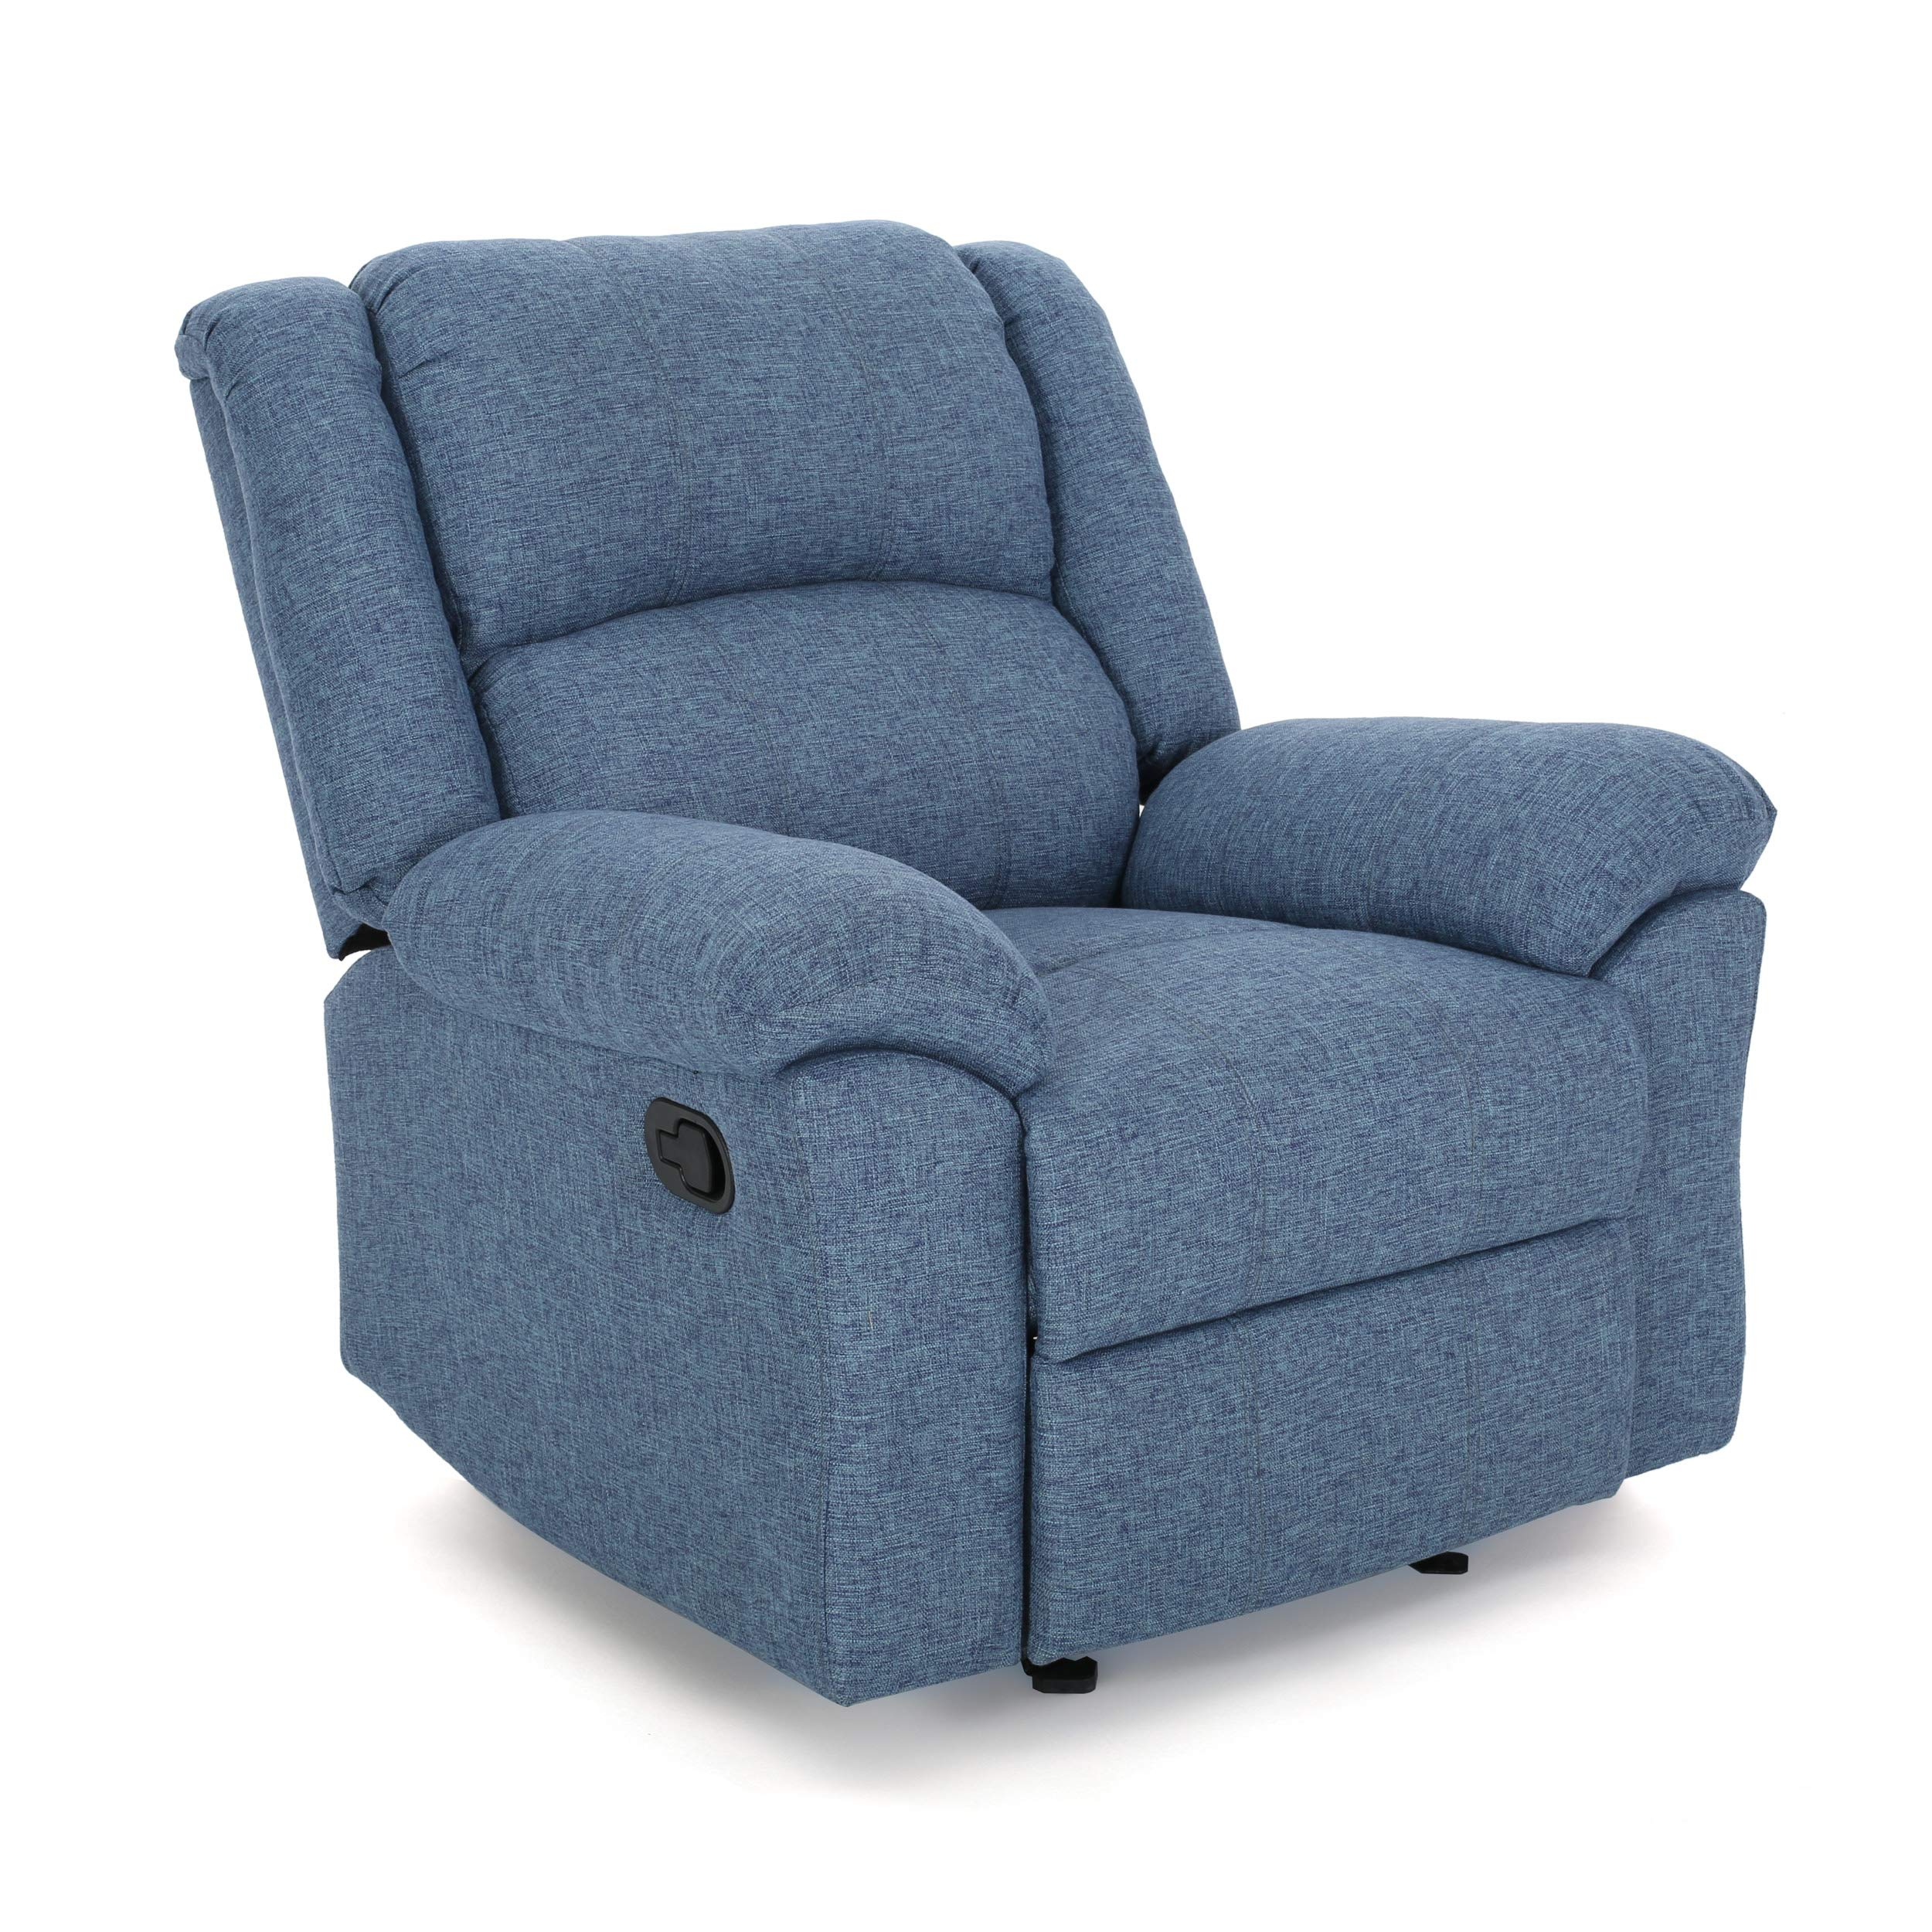 Christopher Knight Home 307575 Nora Glider Recliner, Navy Blue Tweed + Black by Christopher Knight Home